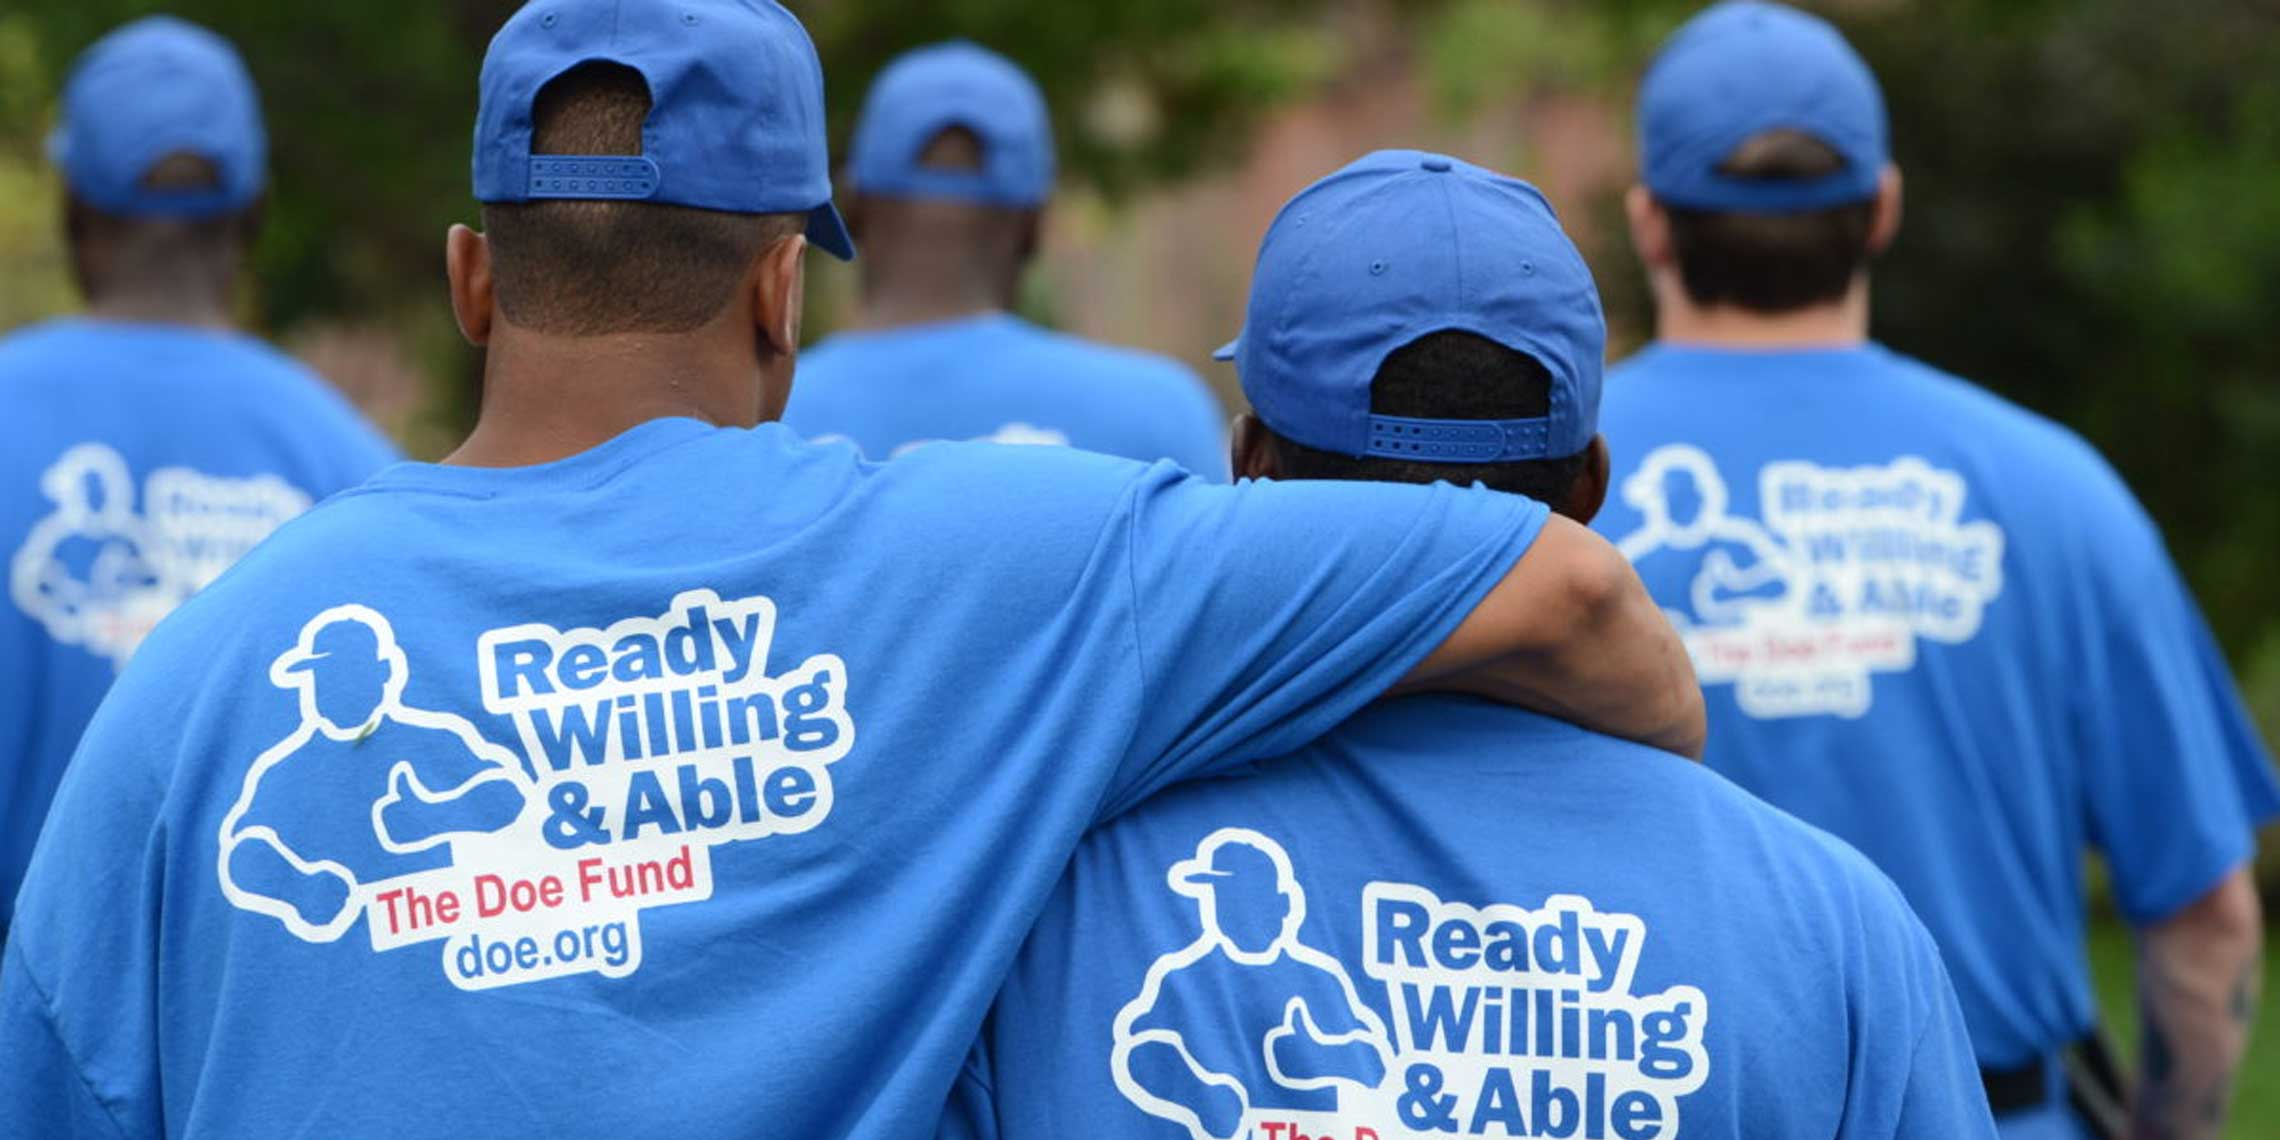 group of people wearing Ready Willing & Able - The Doe Fund tee shirts